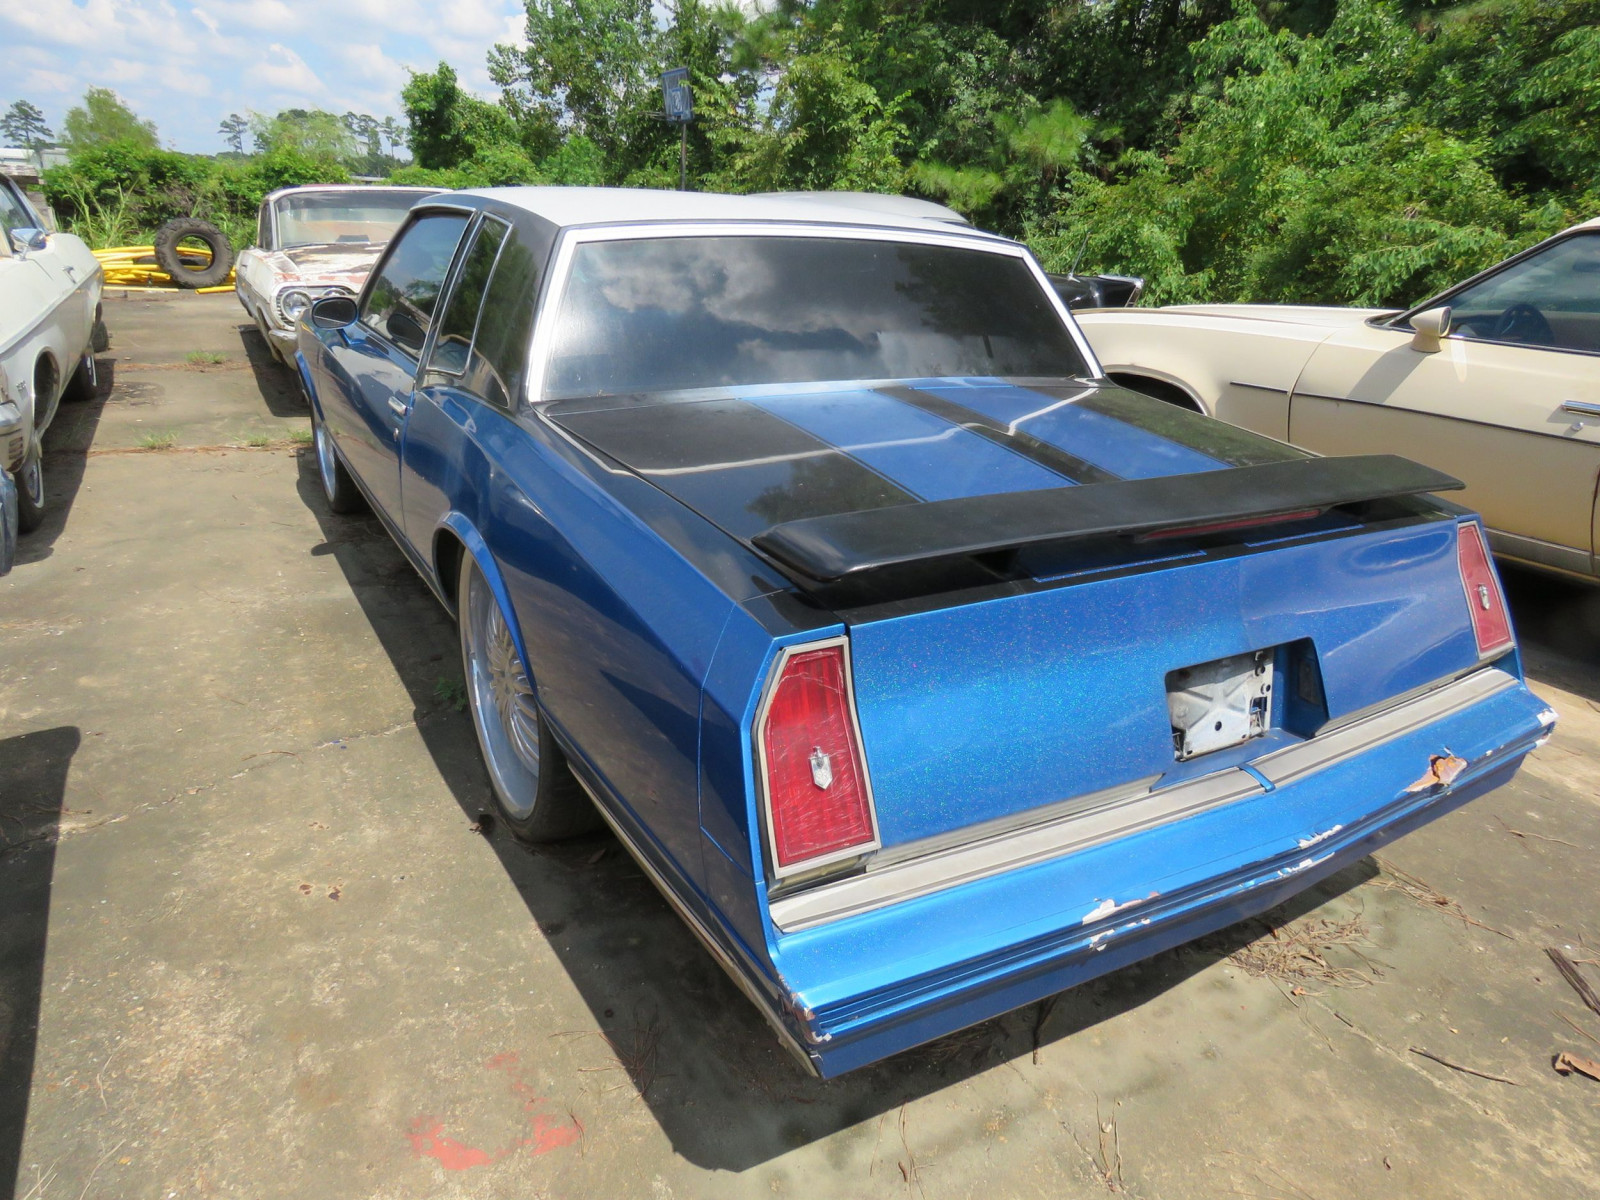 1984 Chevrolet Monte Carlo Custom Project - Image 5